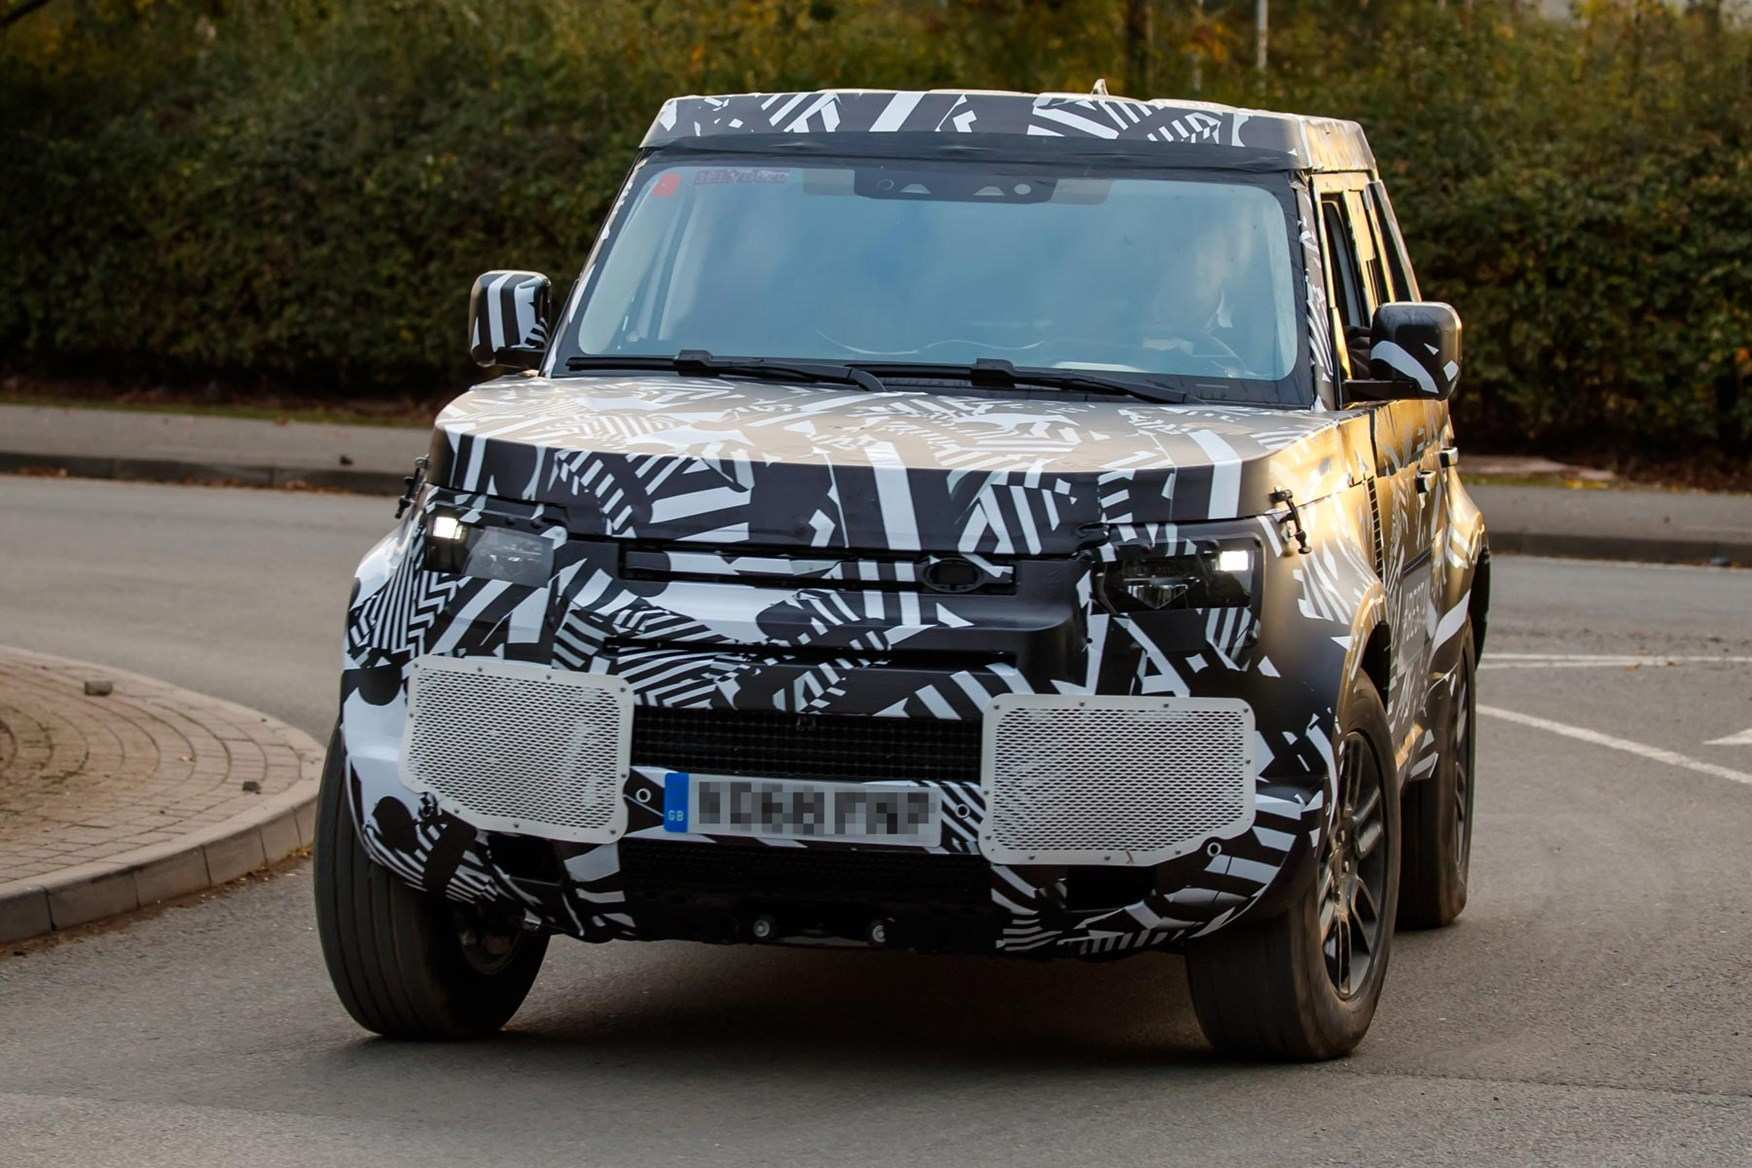 14 New 2020 Land Rover Defender Picture for 2020 Land Rover Defender